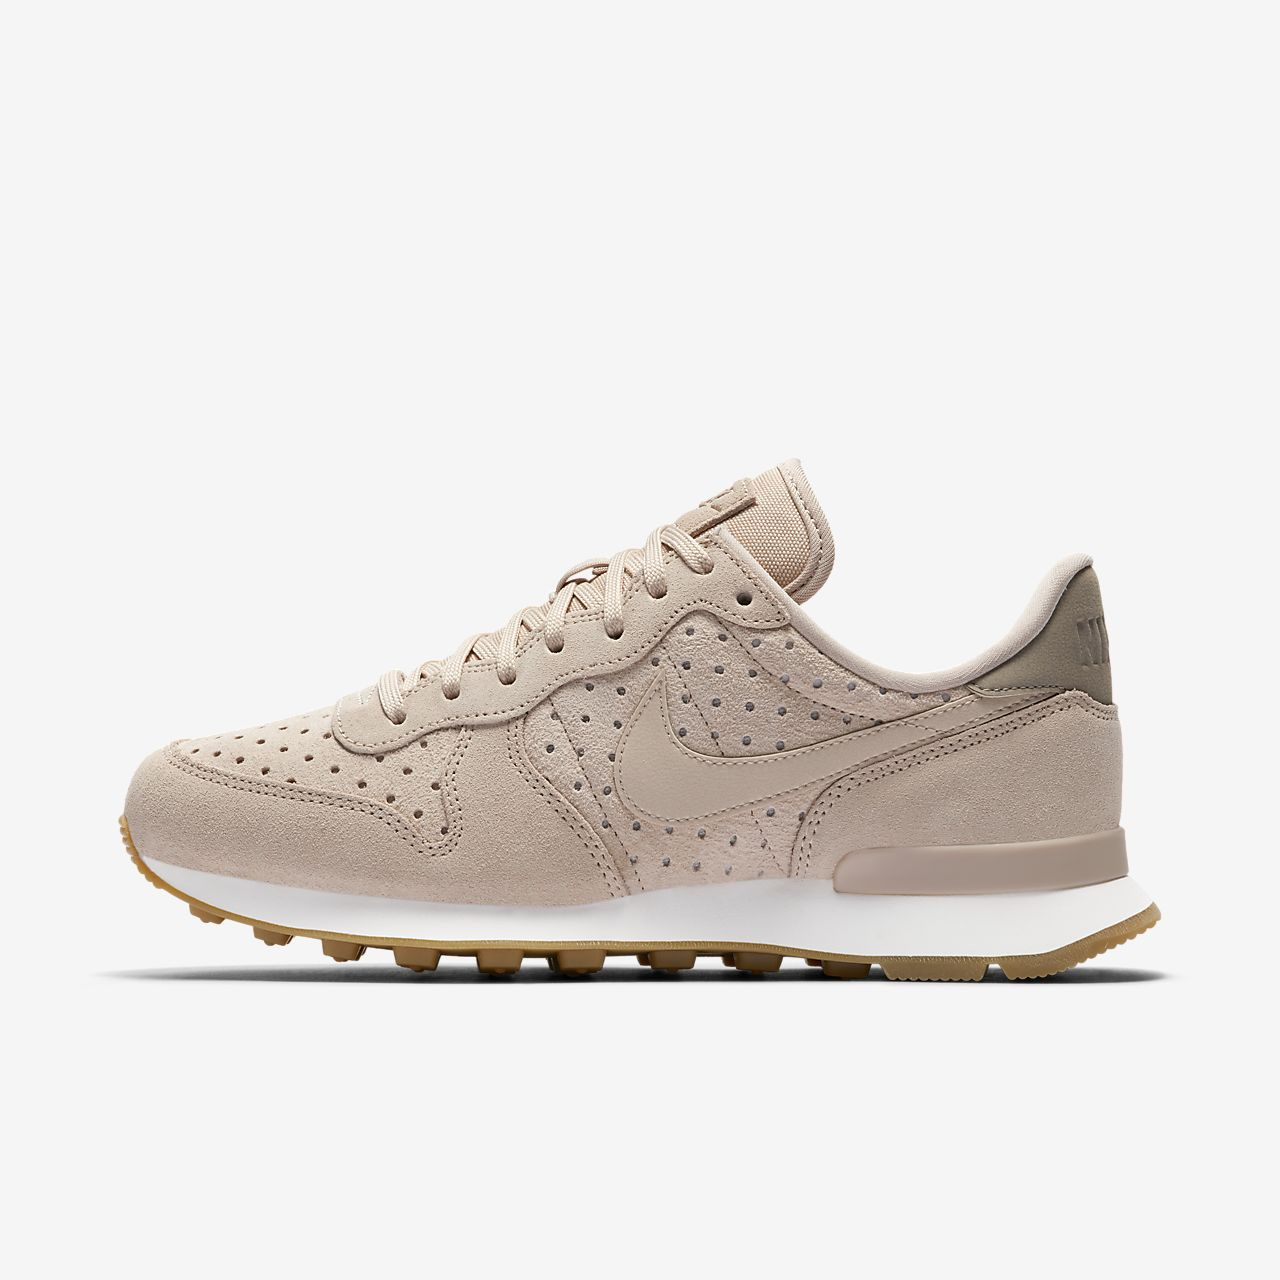 Low Resolution Nike Internationalist Premium Women's Shoe Nike  Internationalist Premium Women's Shoe